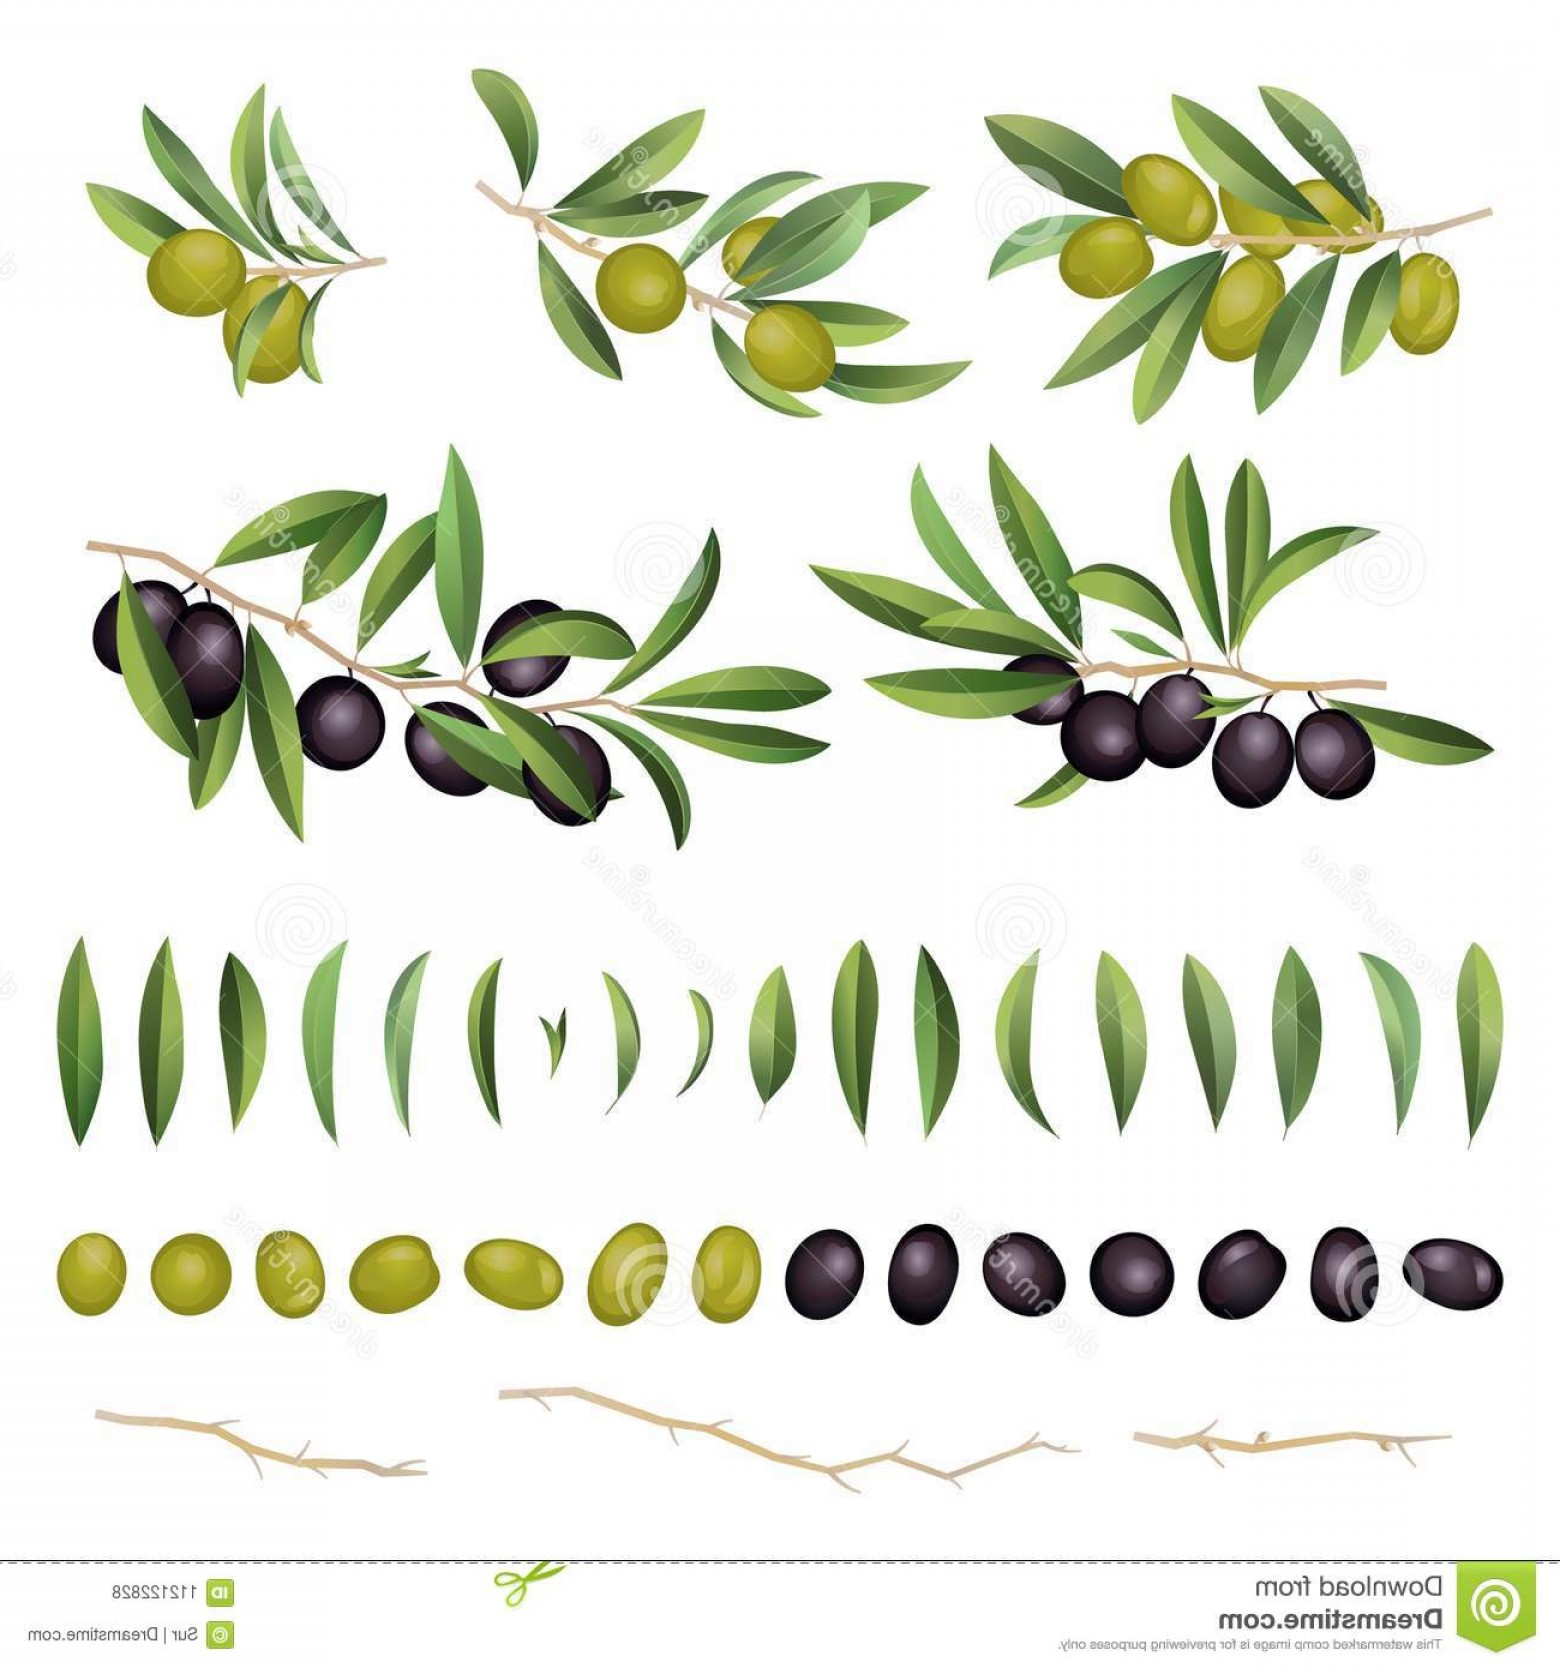 Olive Vector: Green Black Olives Leaves Branch Collection Isolated White Background Known As Olea Europaea European Olive Vector Image